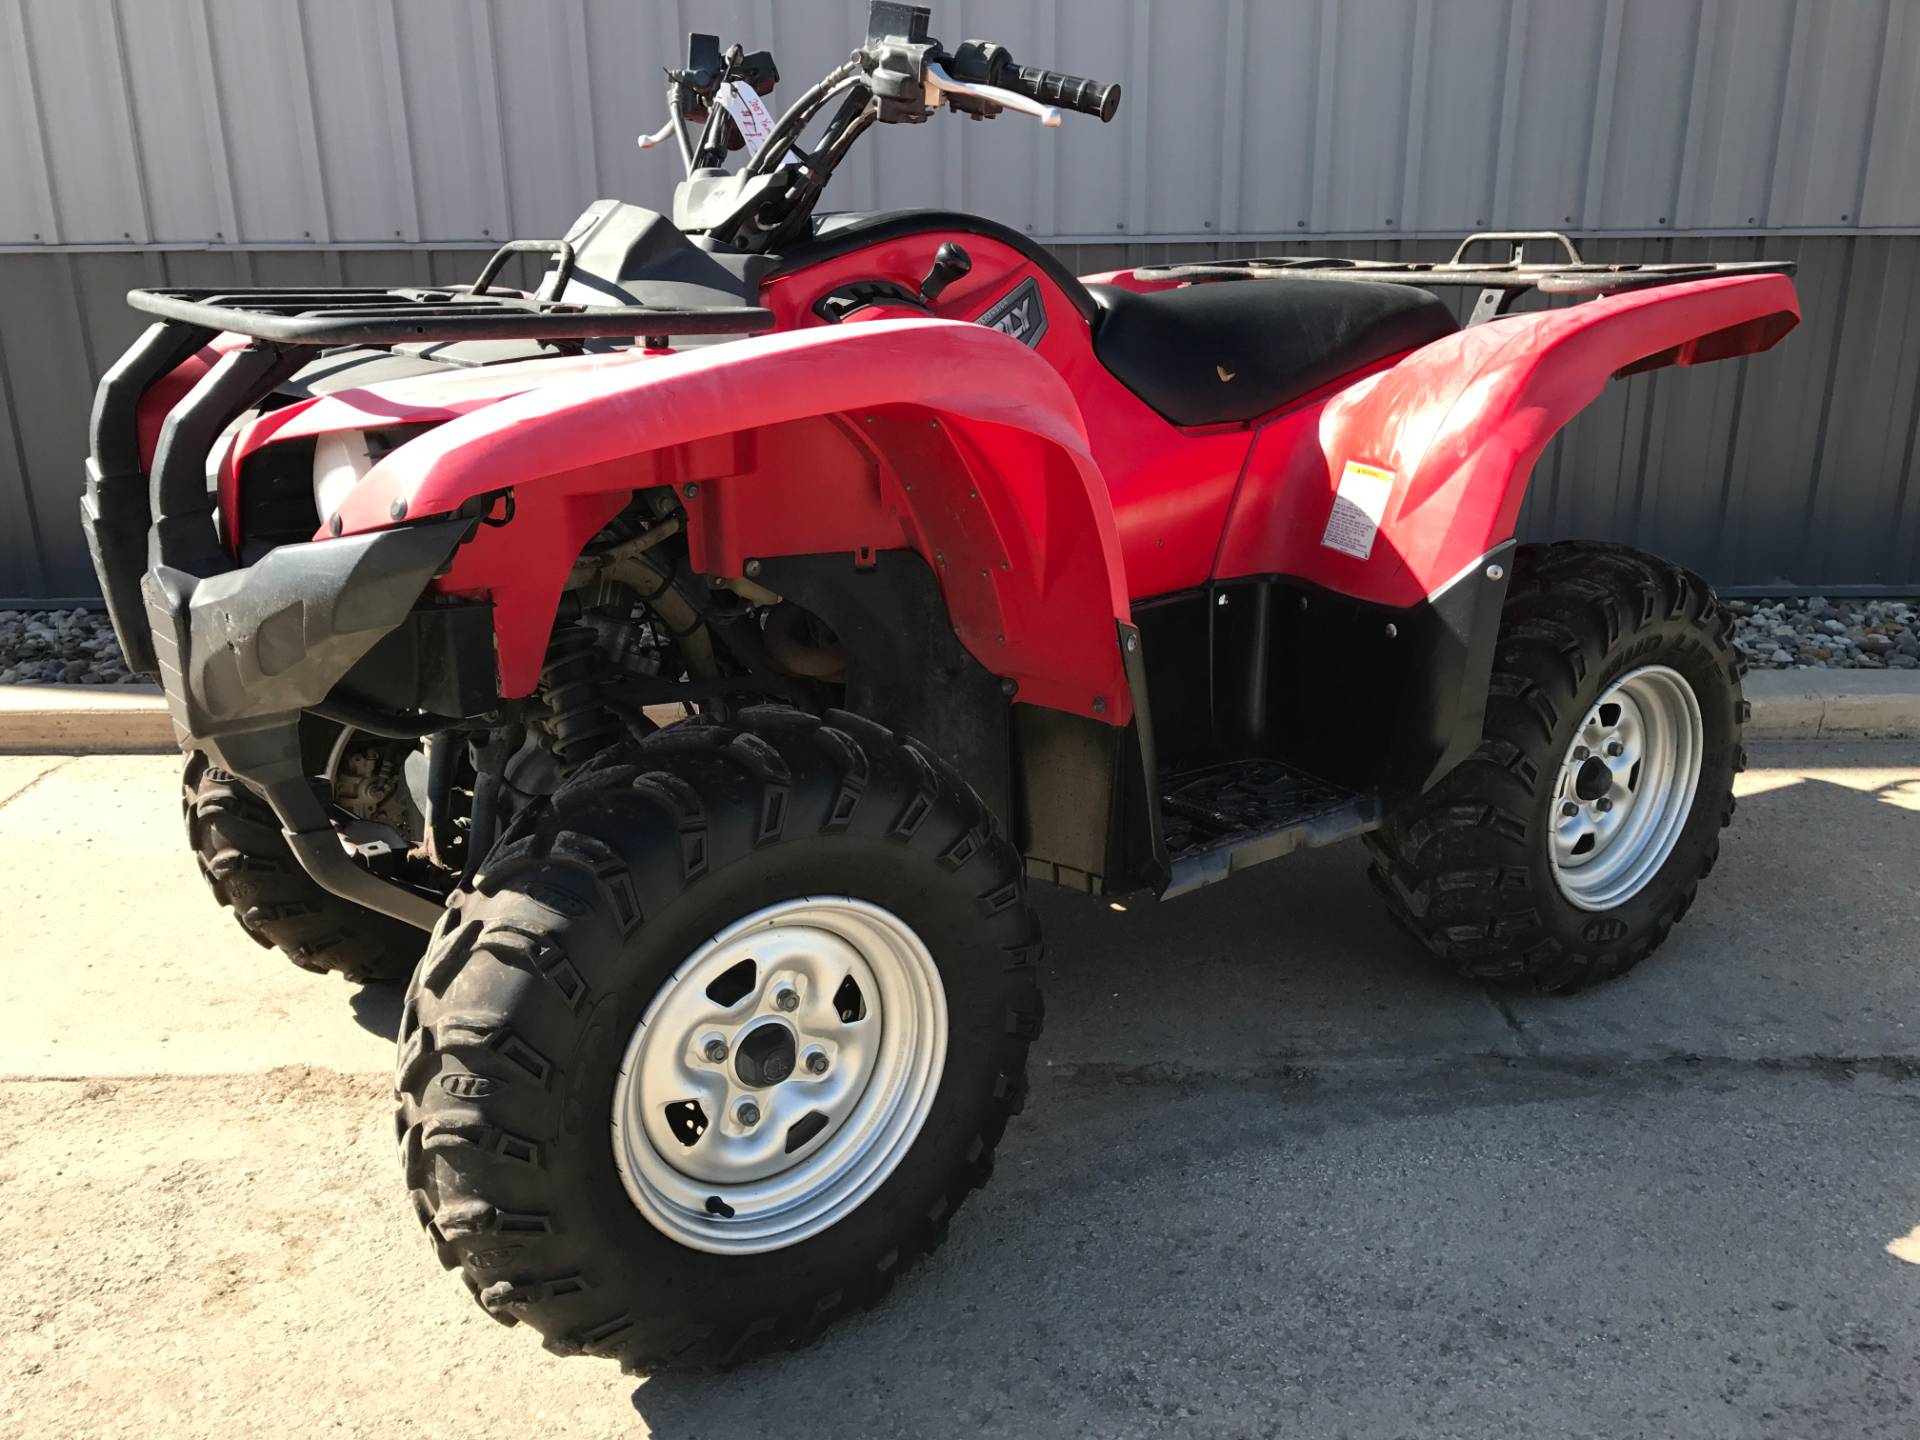 2007 Yamaha Grizzly 700 FI Auto. 4x4 in Atlantic, Iowa